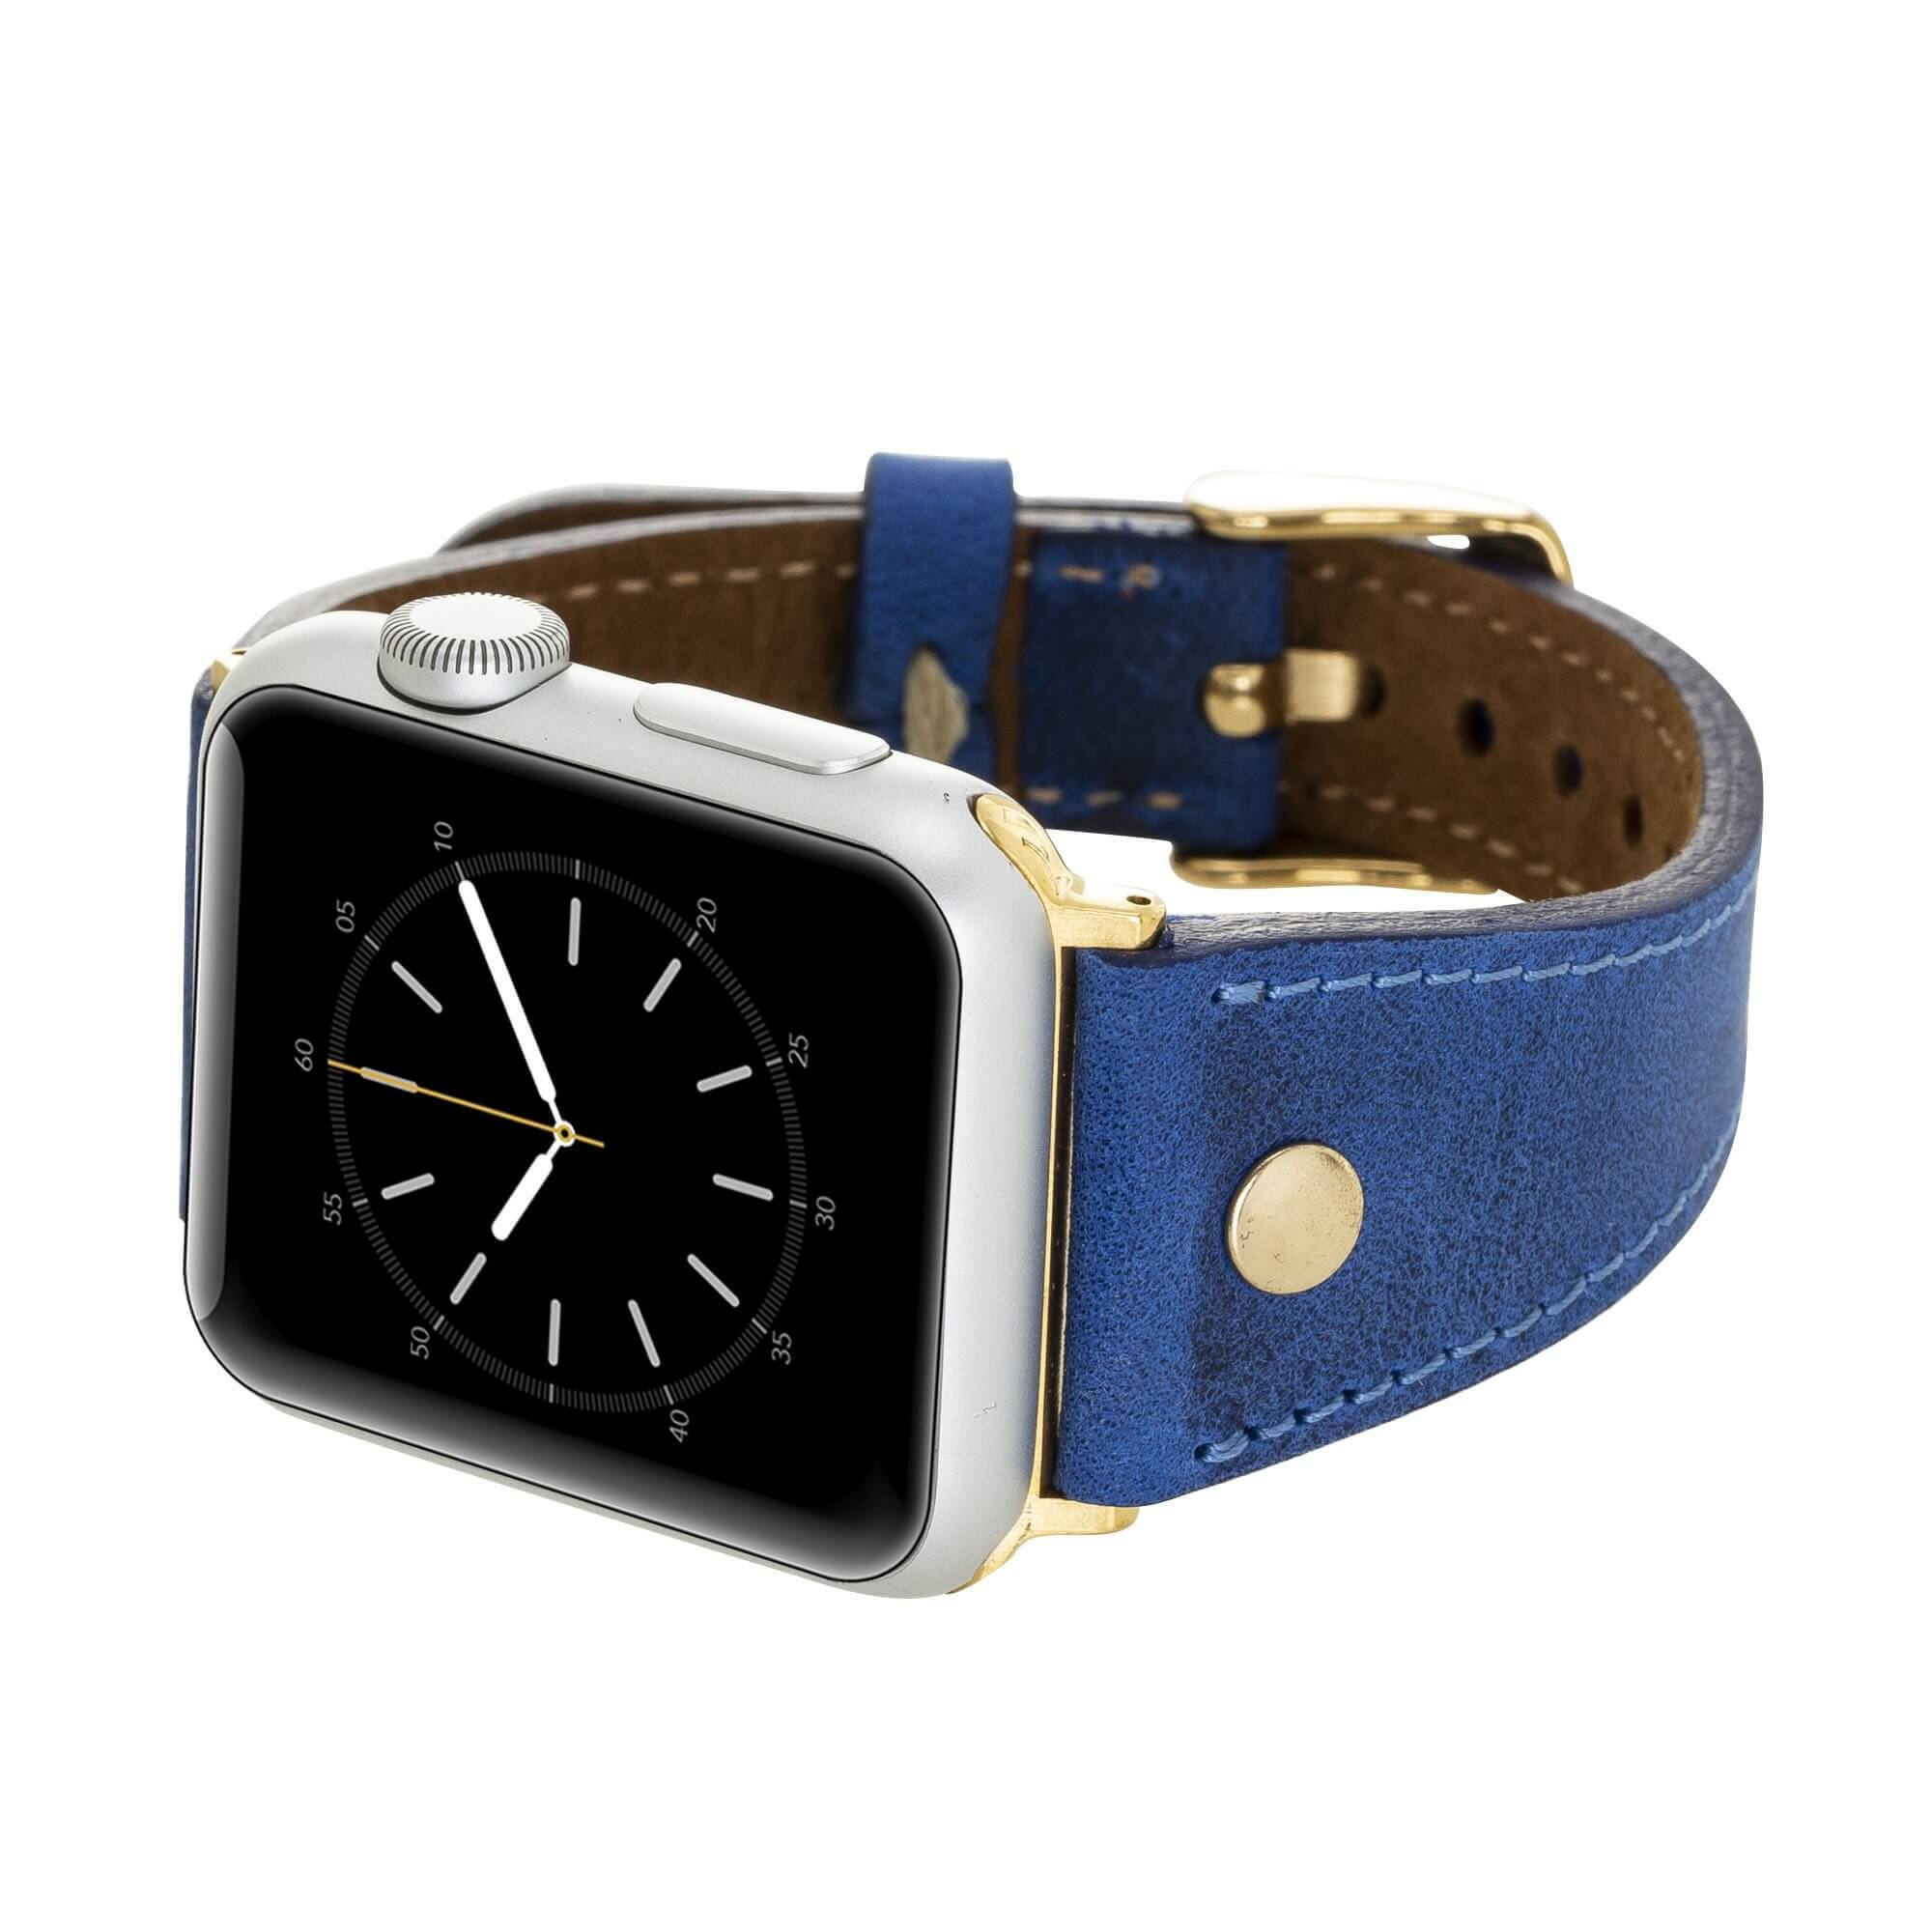 The Venito Way to Wear Your iWatch: Leather Apple Watch Bands